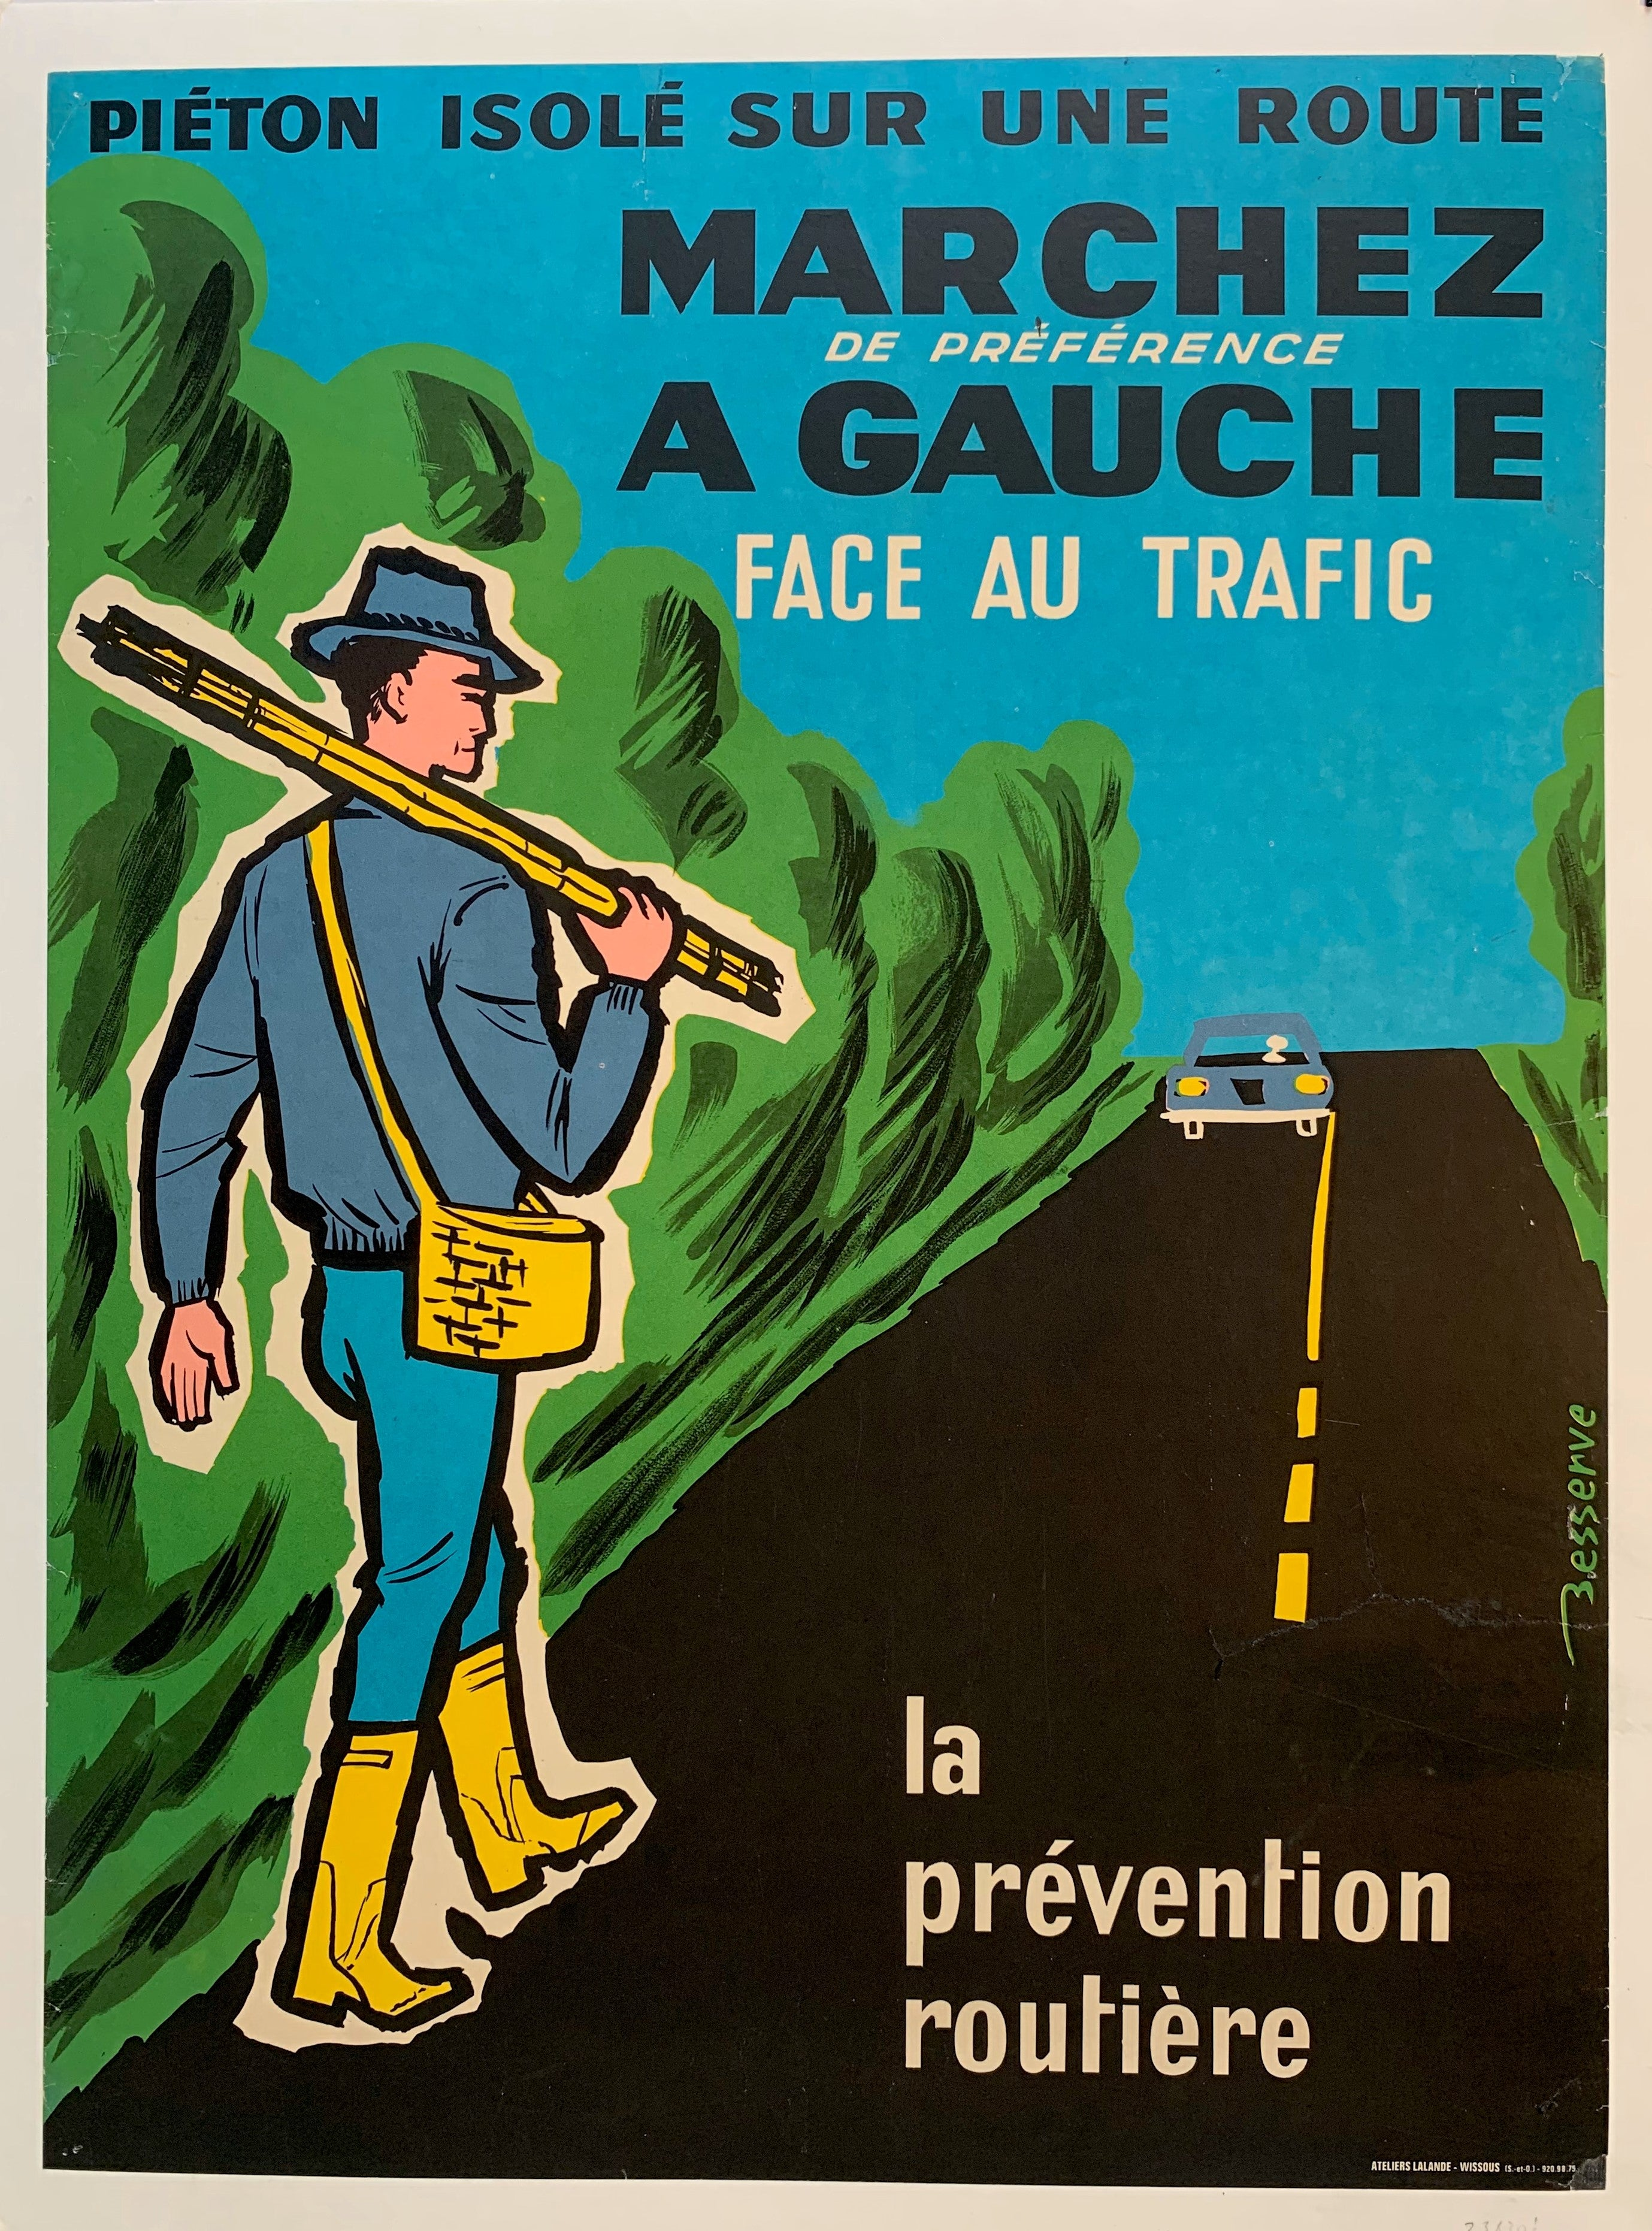 Pieton Isole Sur Une Route Marchez de preference A Gauche Face Au Trafic - La Prevention Routiere